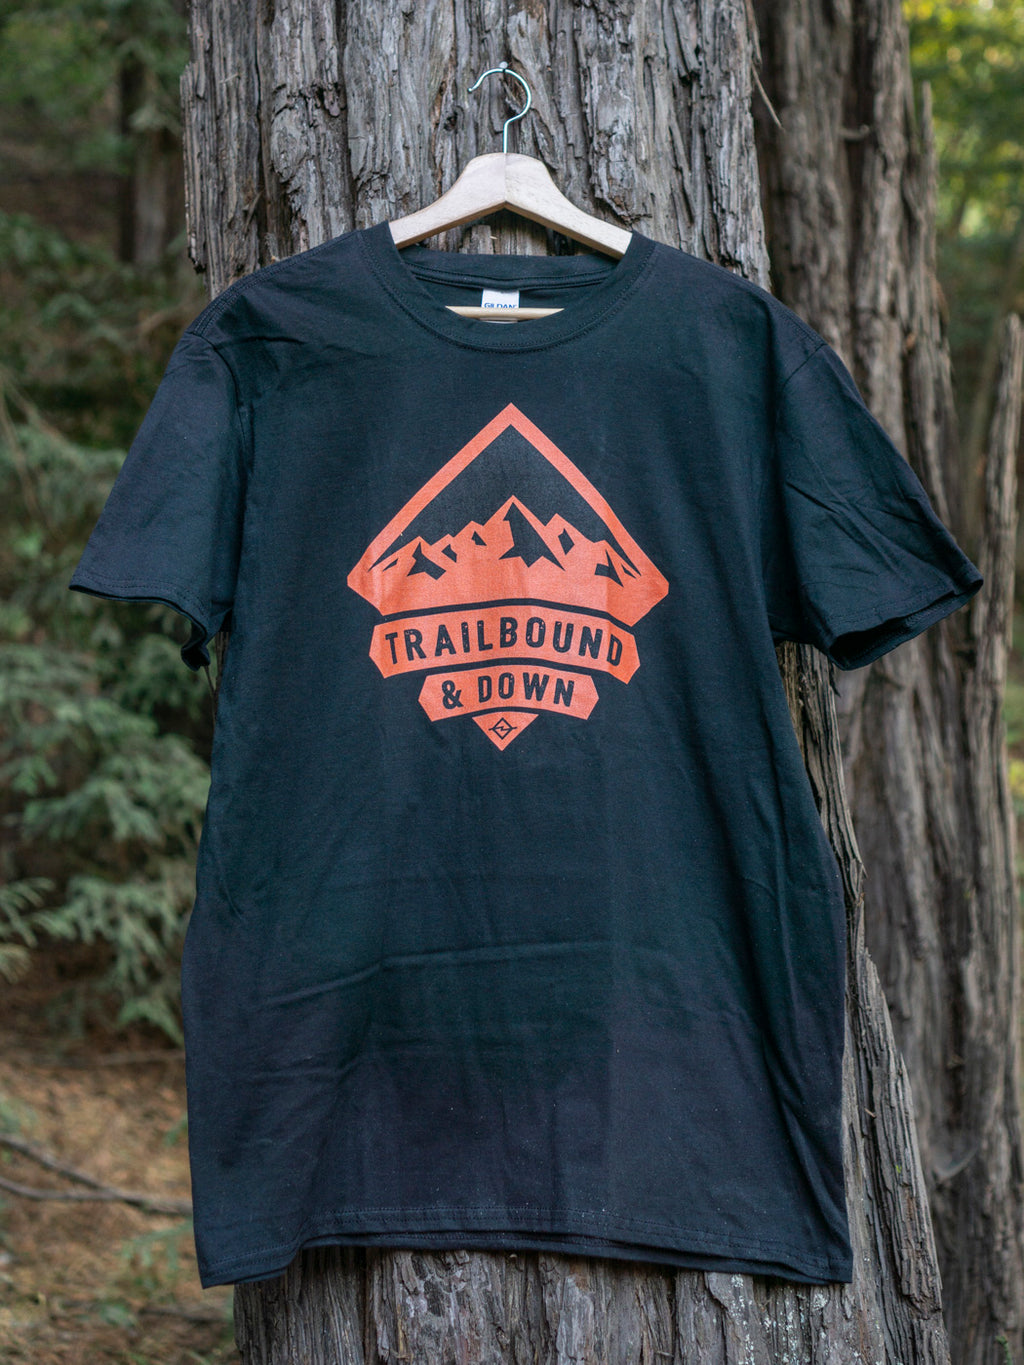 Trailbound & Down Shirt